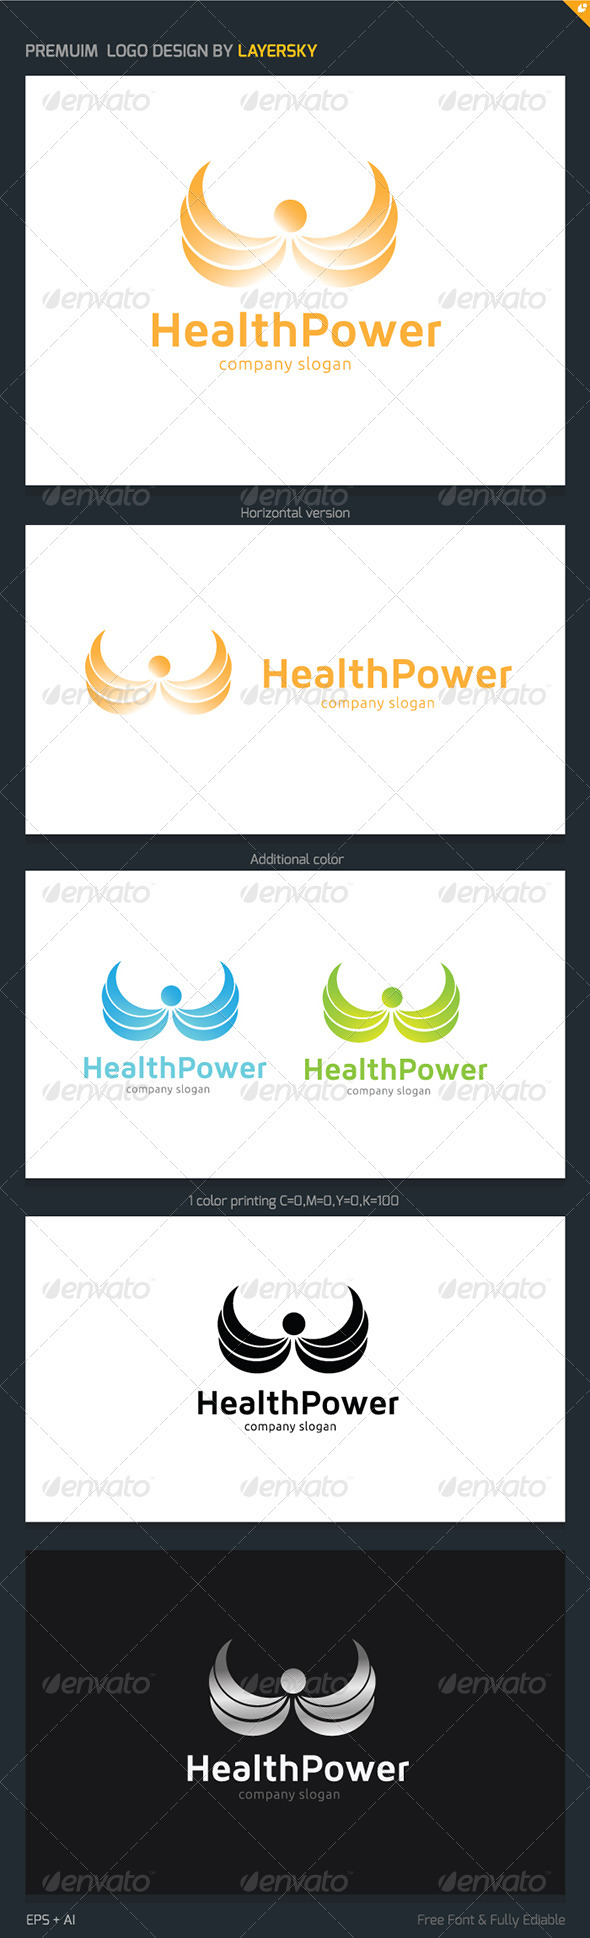 GraphicRiver Health Power Logo 3898683